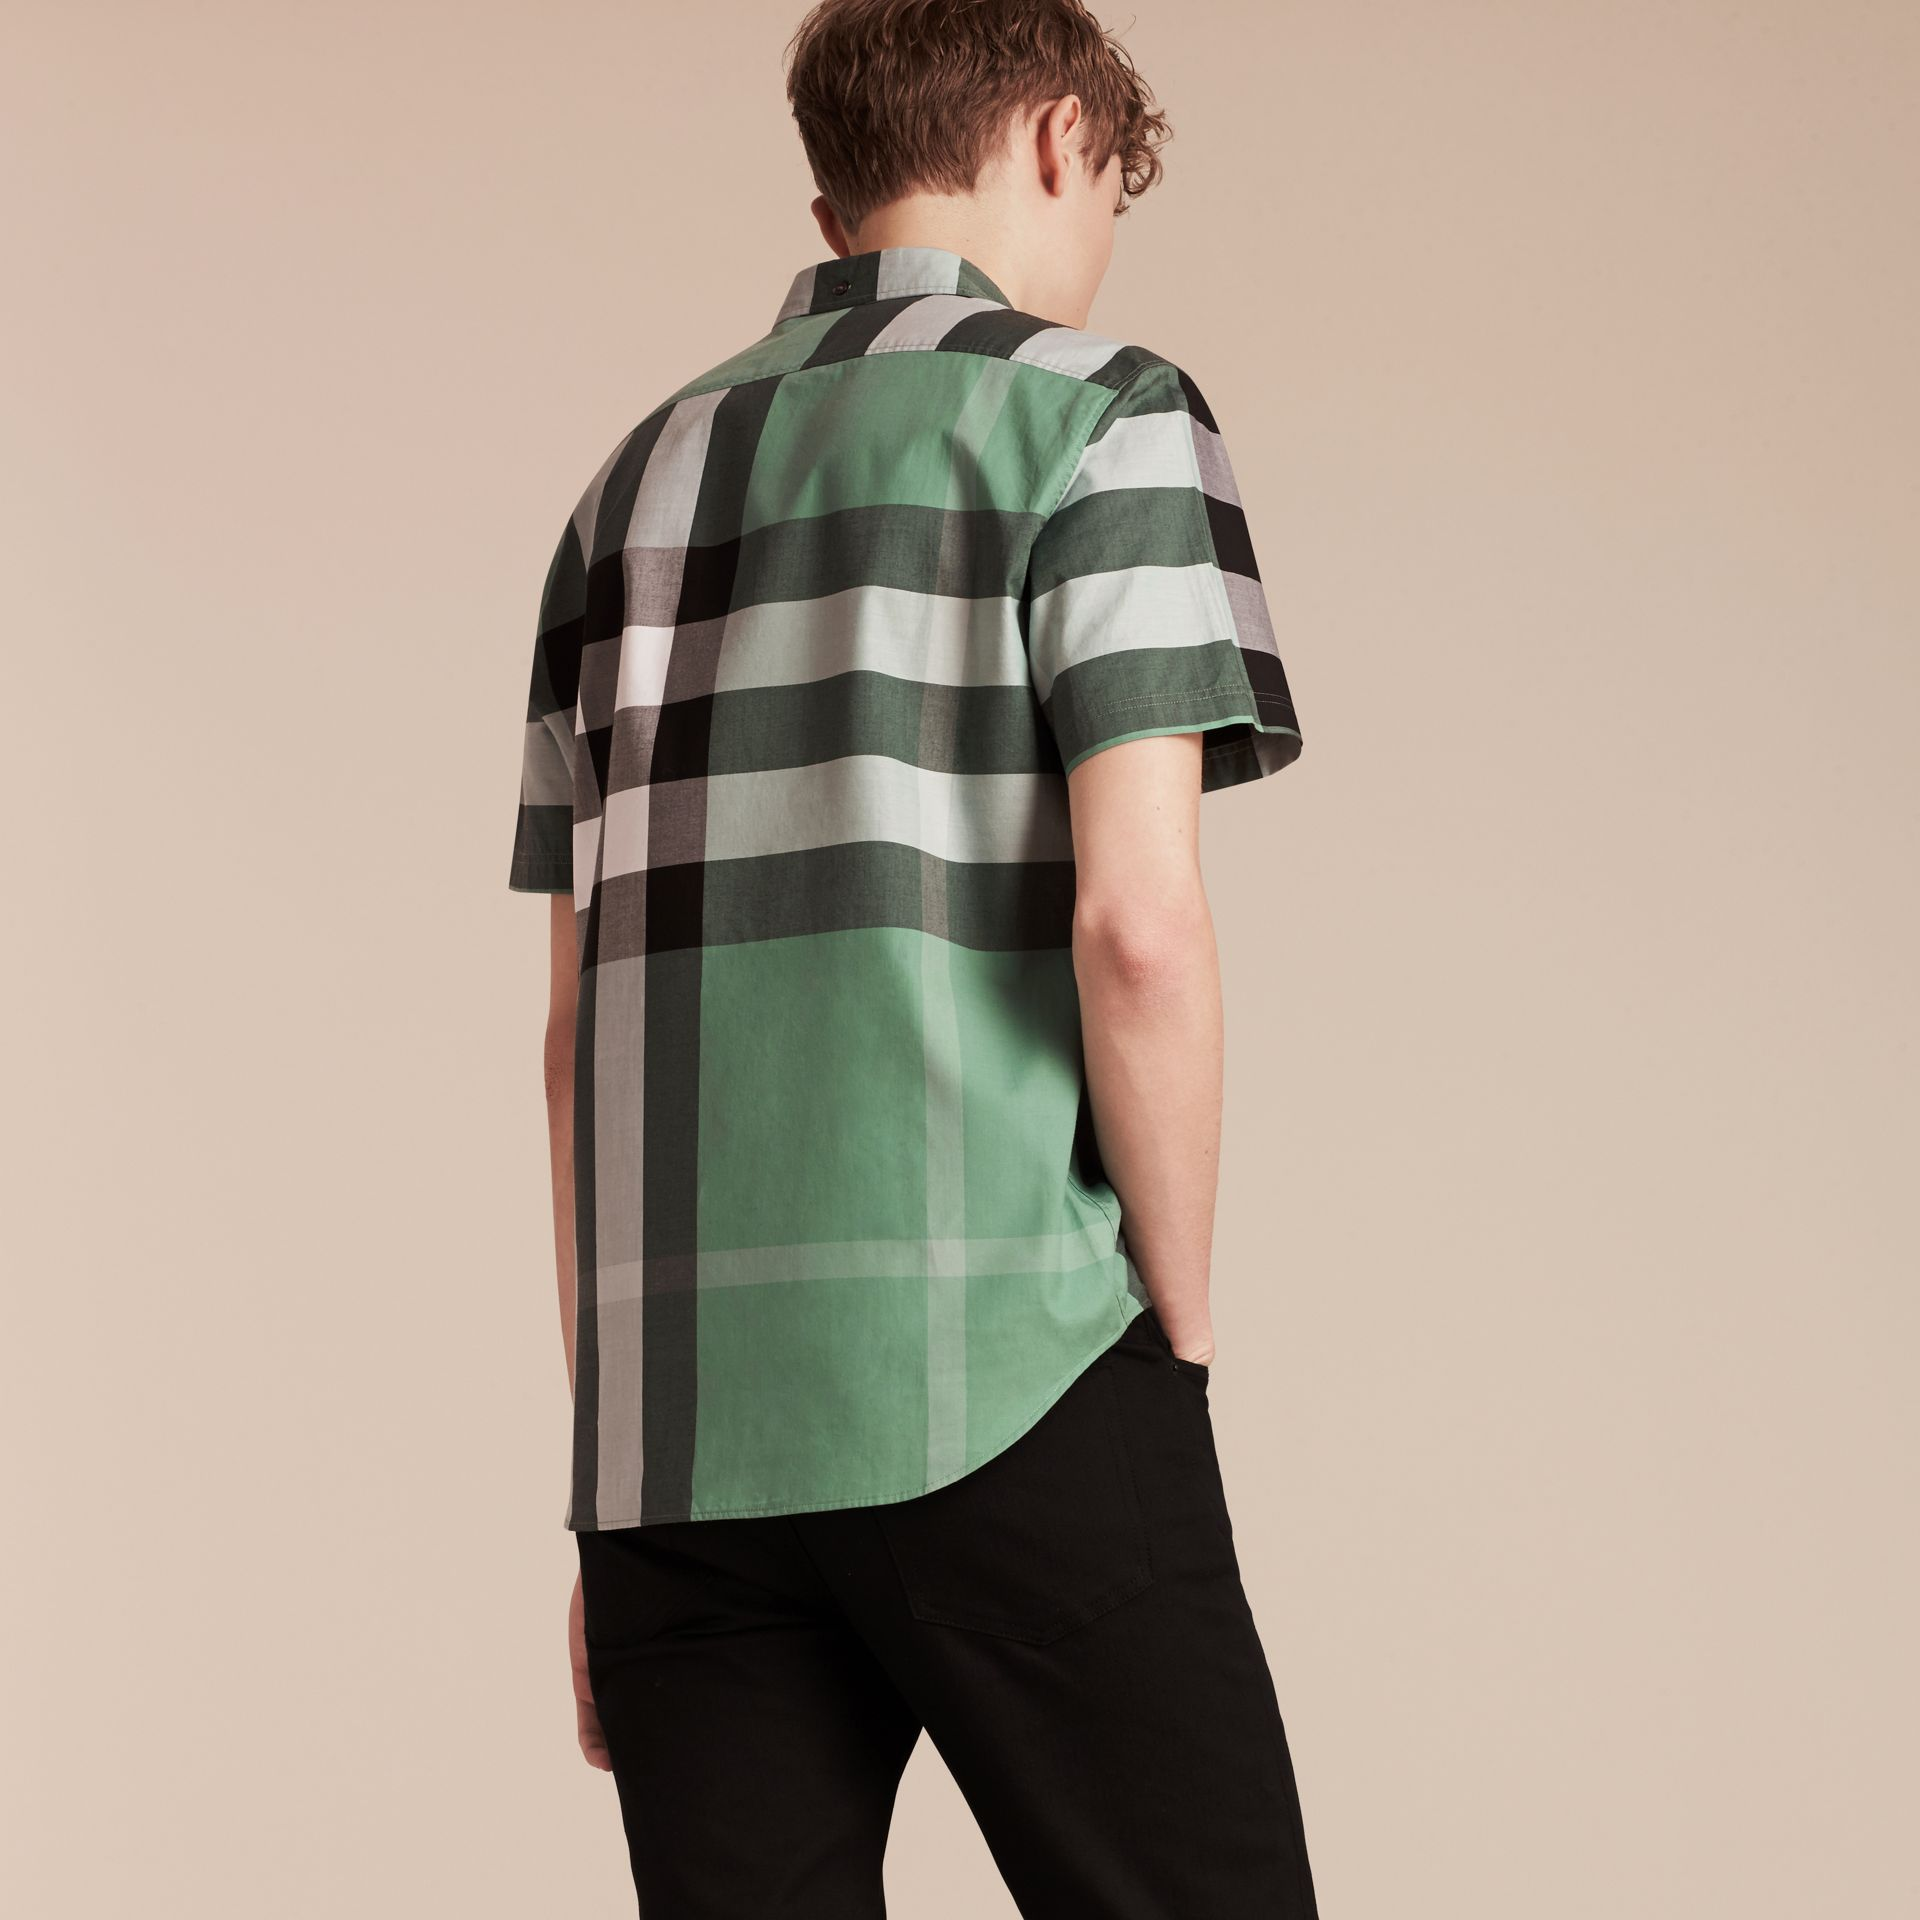 Aqua green Short-sleeved Check Cotton Shirt Aqua Green - gallery image 3